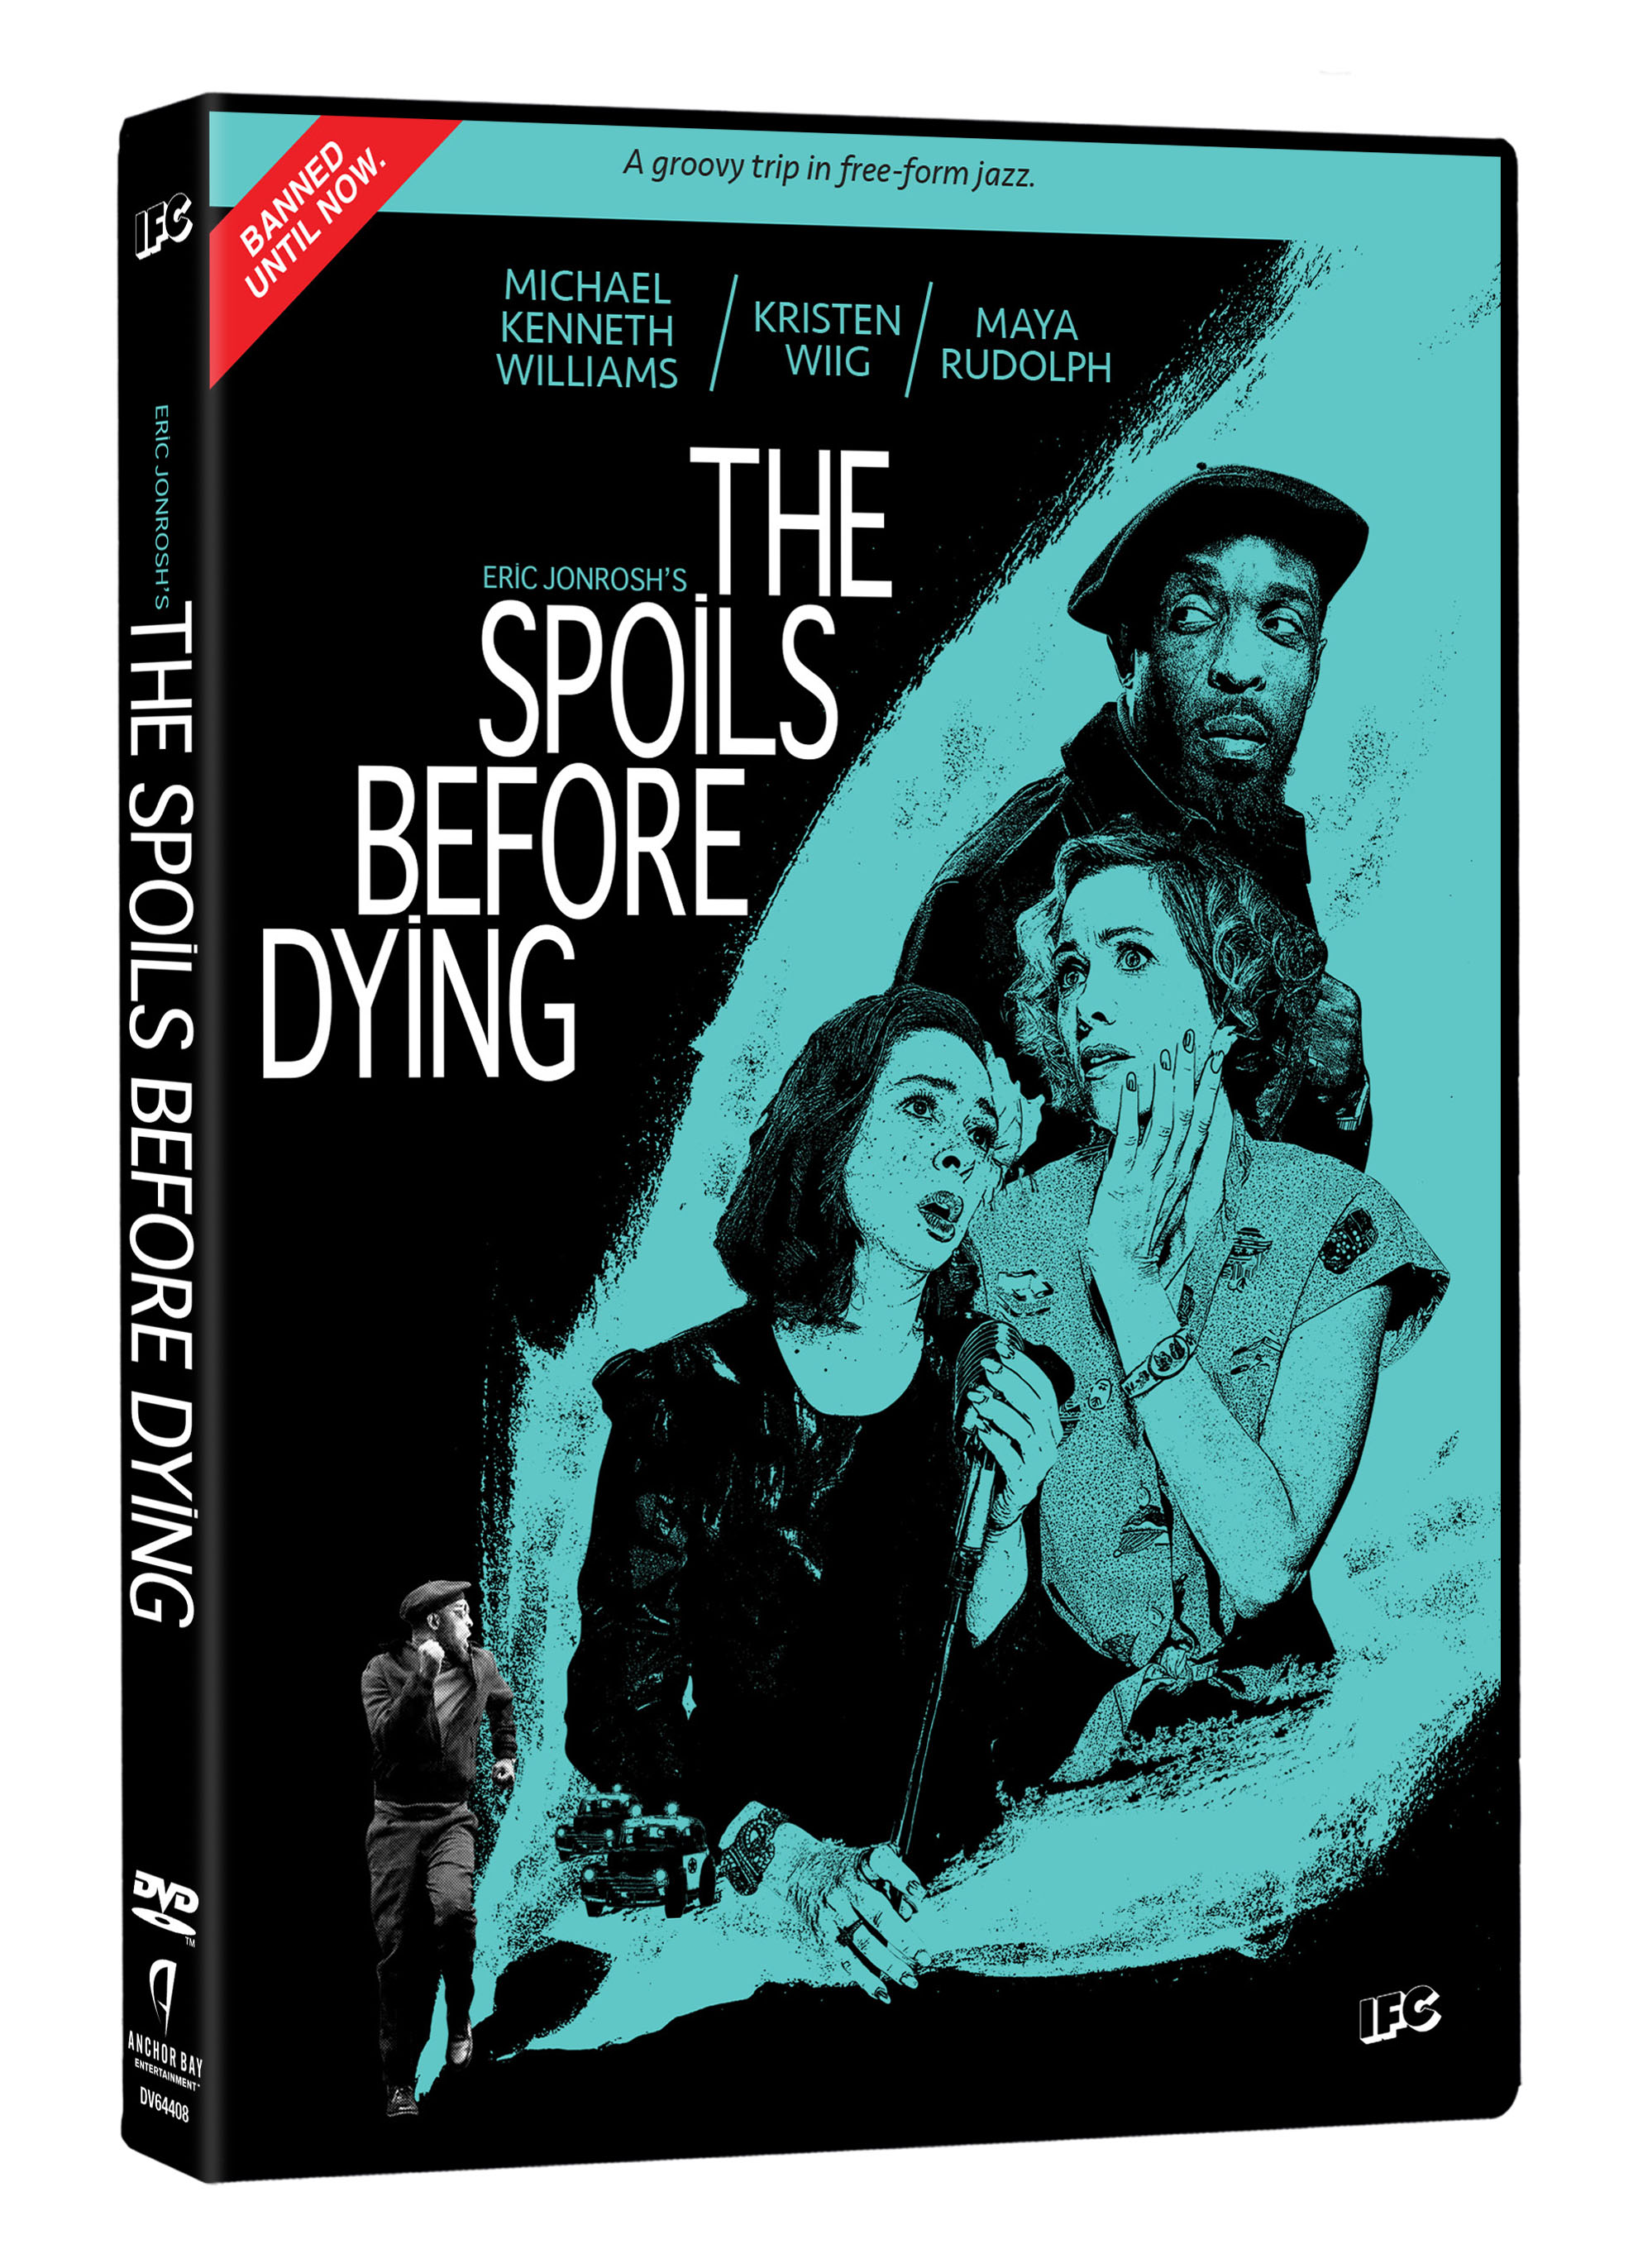 The Spoils Before Dying DVD Review